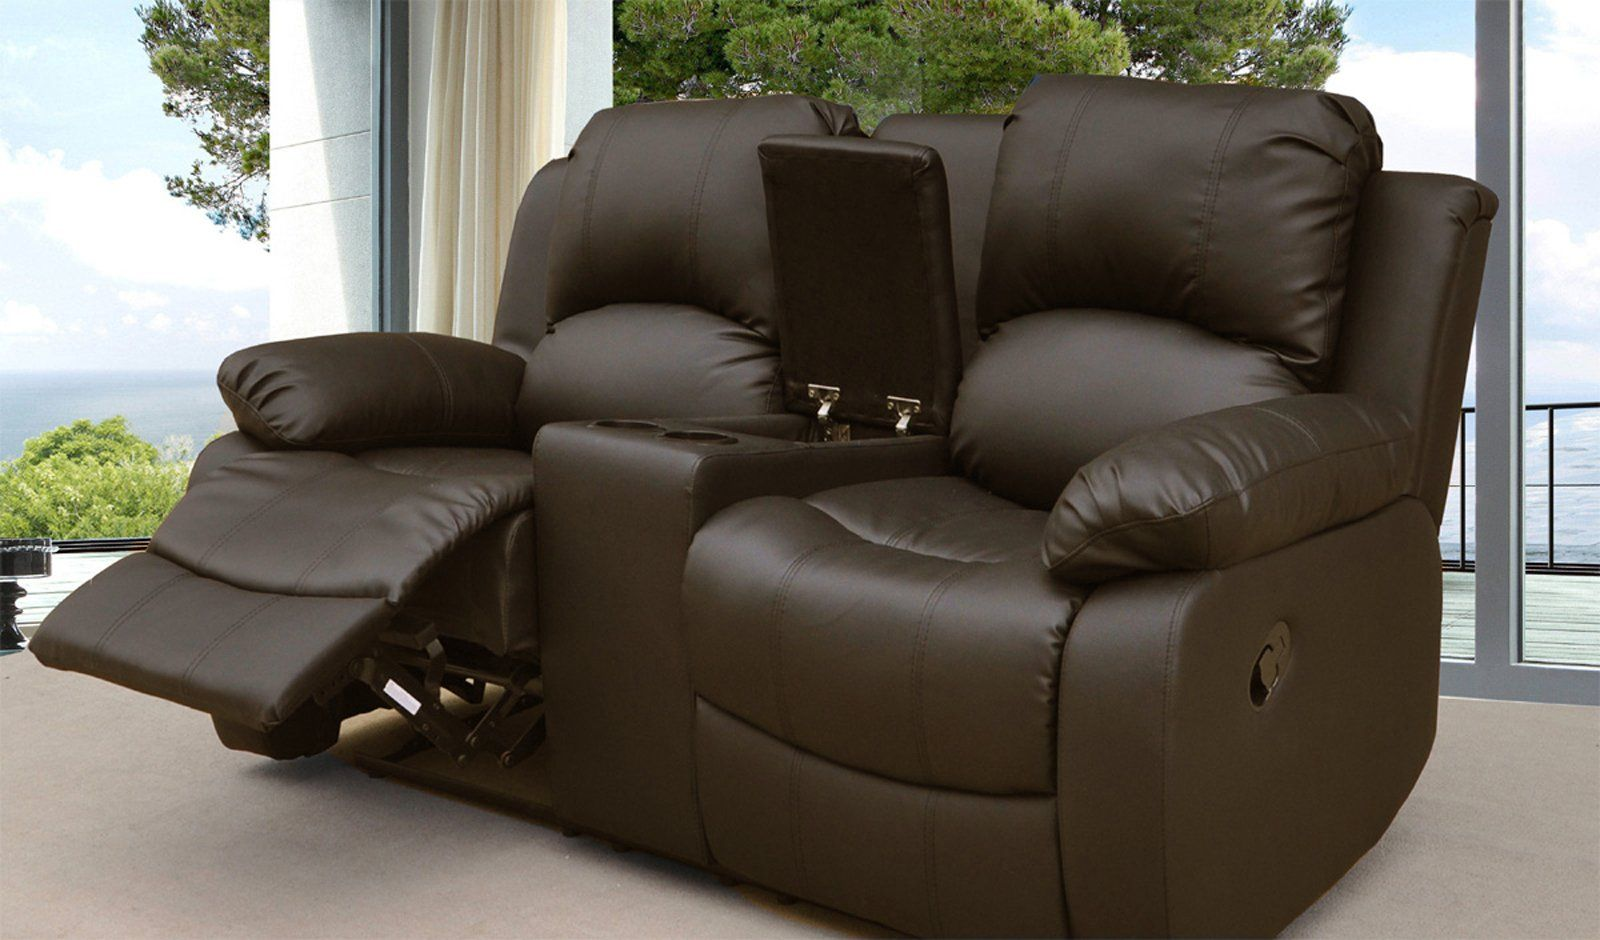 Lovesofas Valencia 2 seater leather recliner sofa with